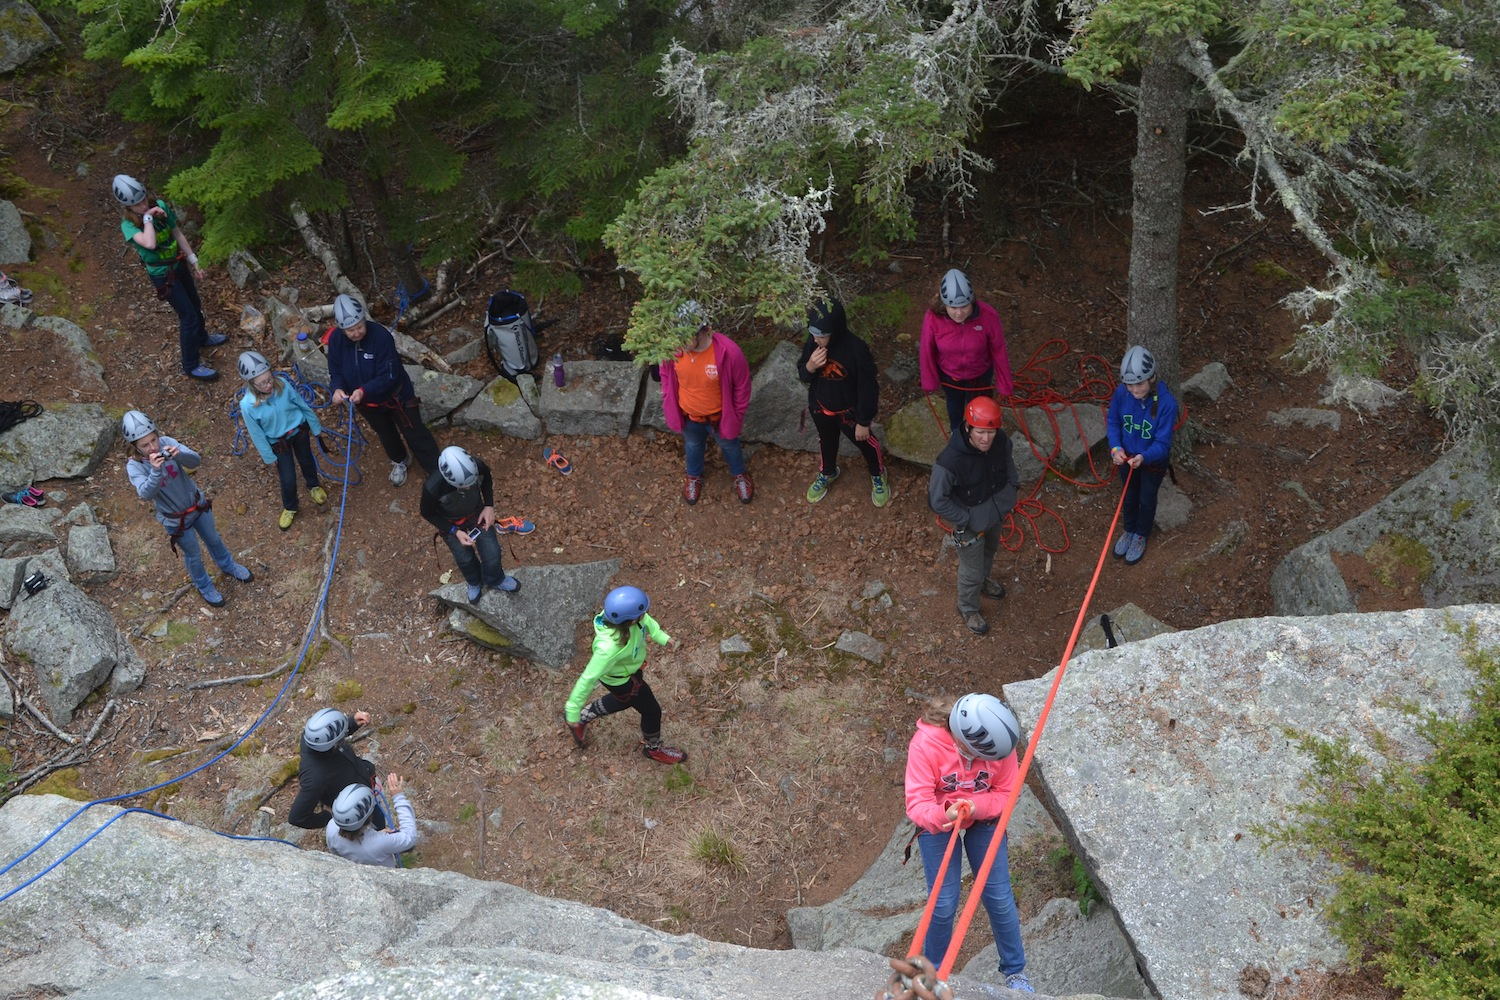 Learning to rock climb and belay requires good communication and trust